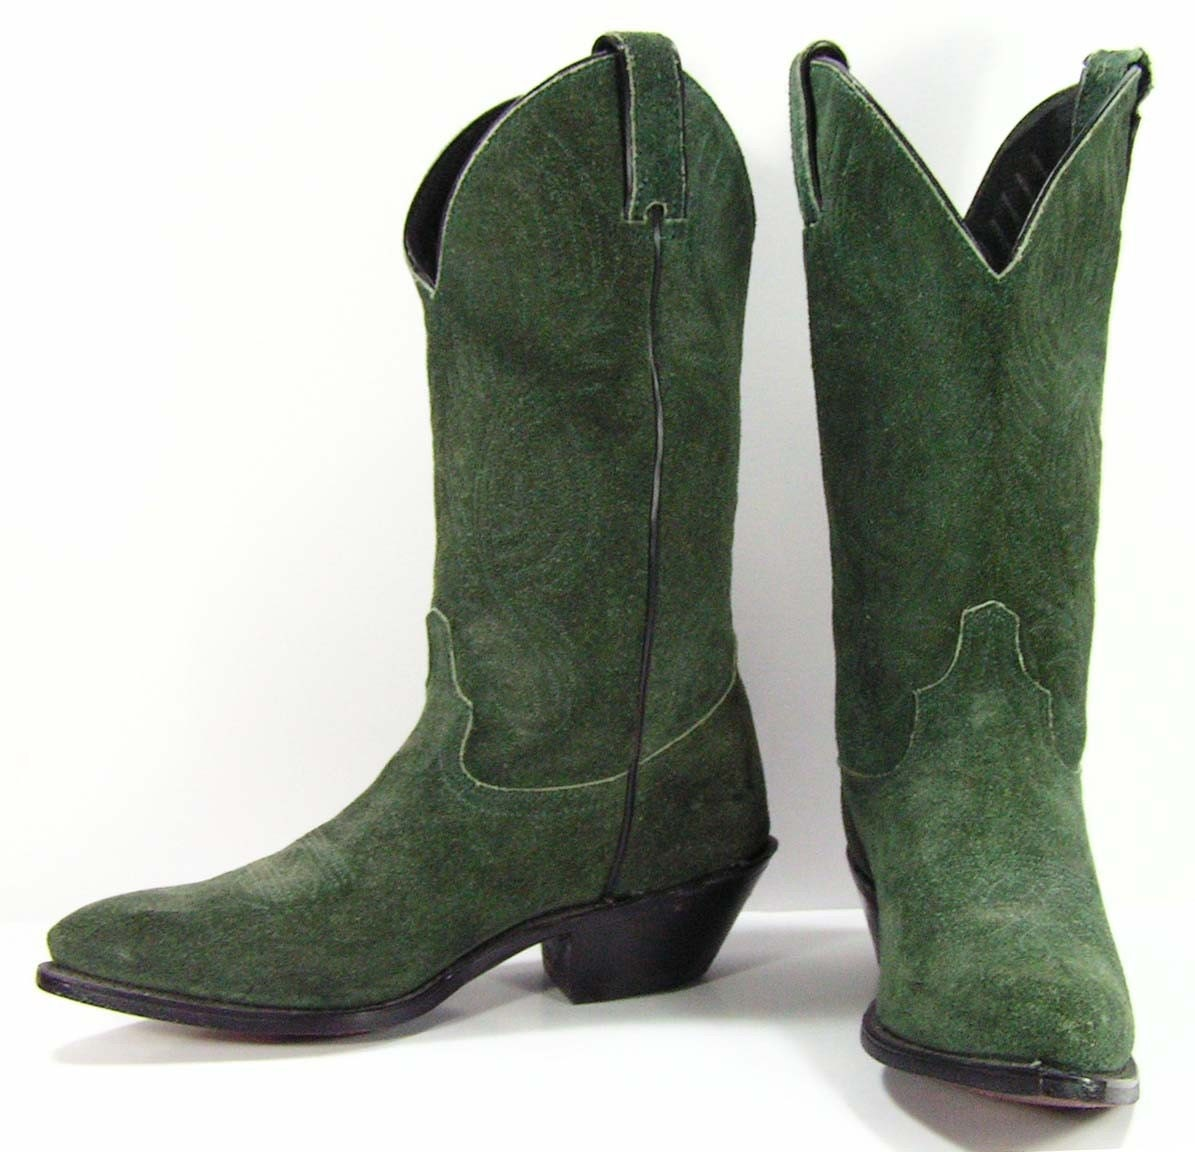 cowboy boots womens 6.5 B M green leather suede western